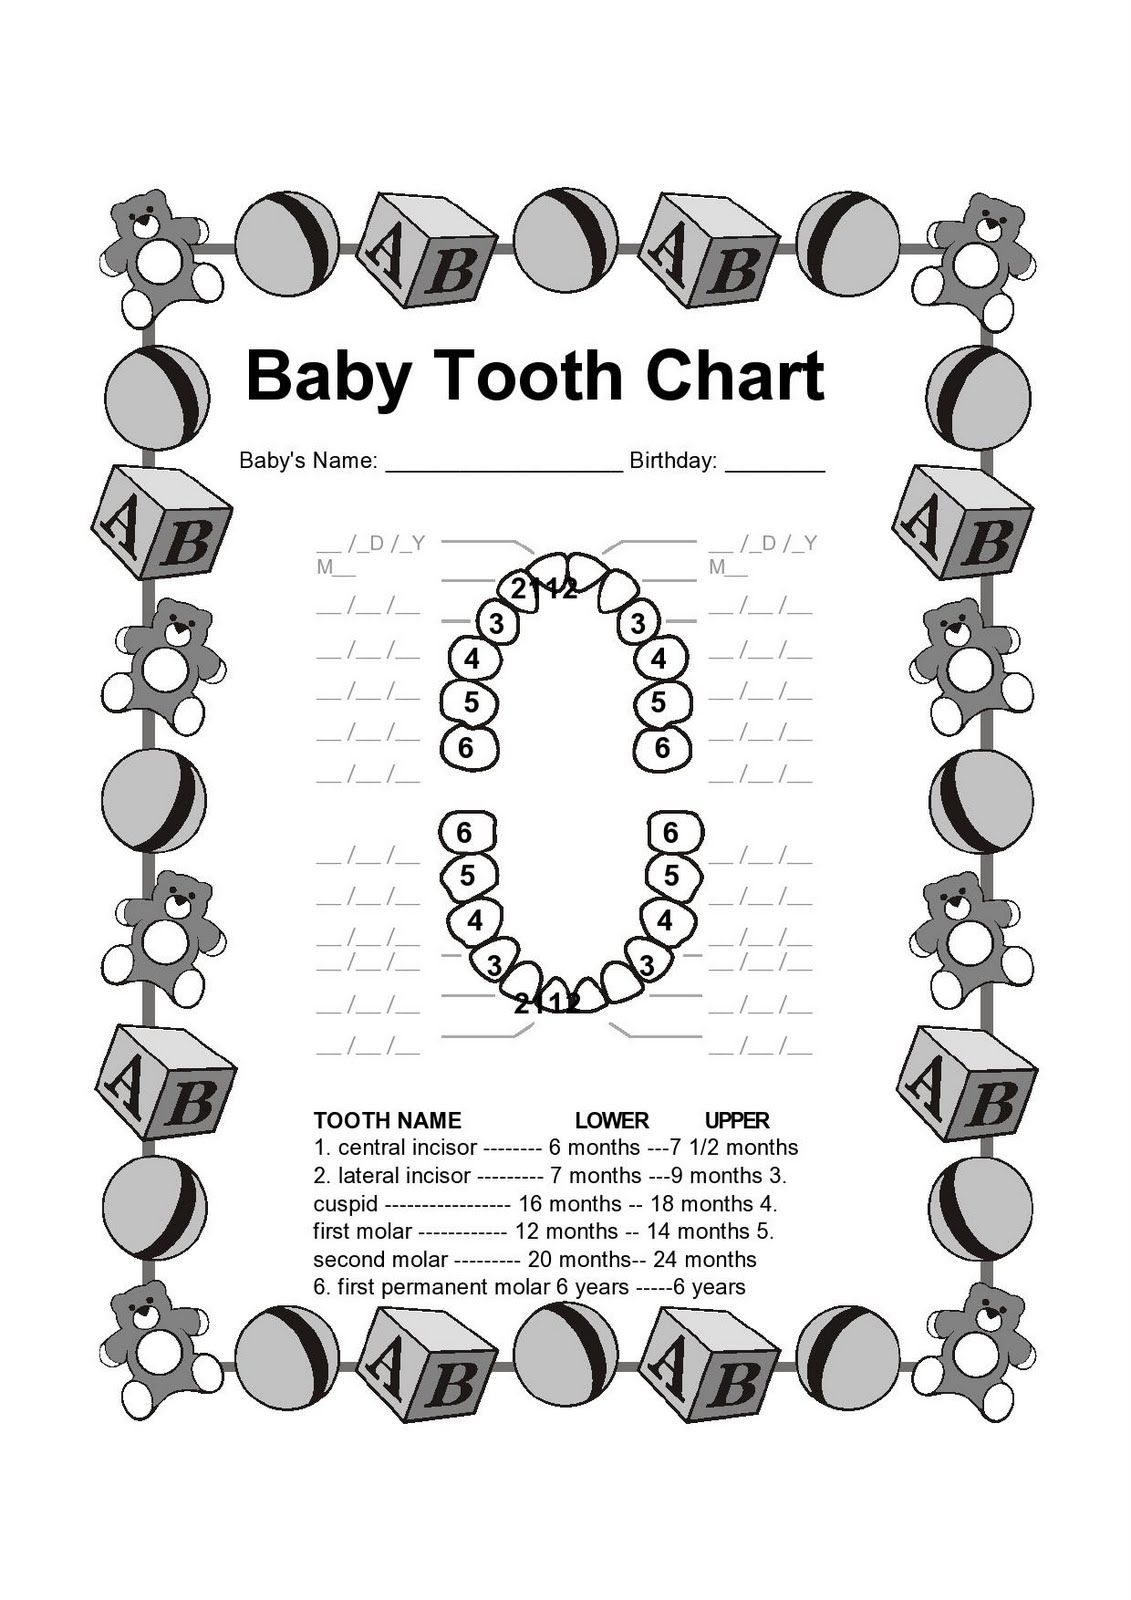 teeth coloring pages | Baby-Tooth-Charts-Printable-Teeth-Free ...